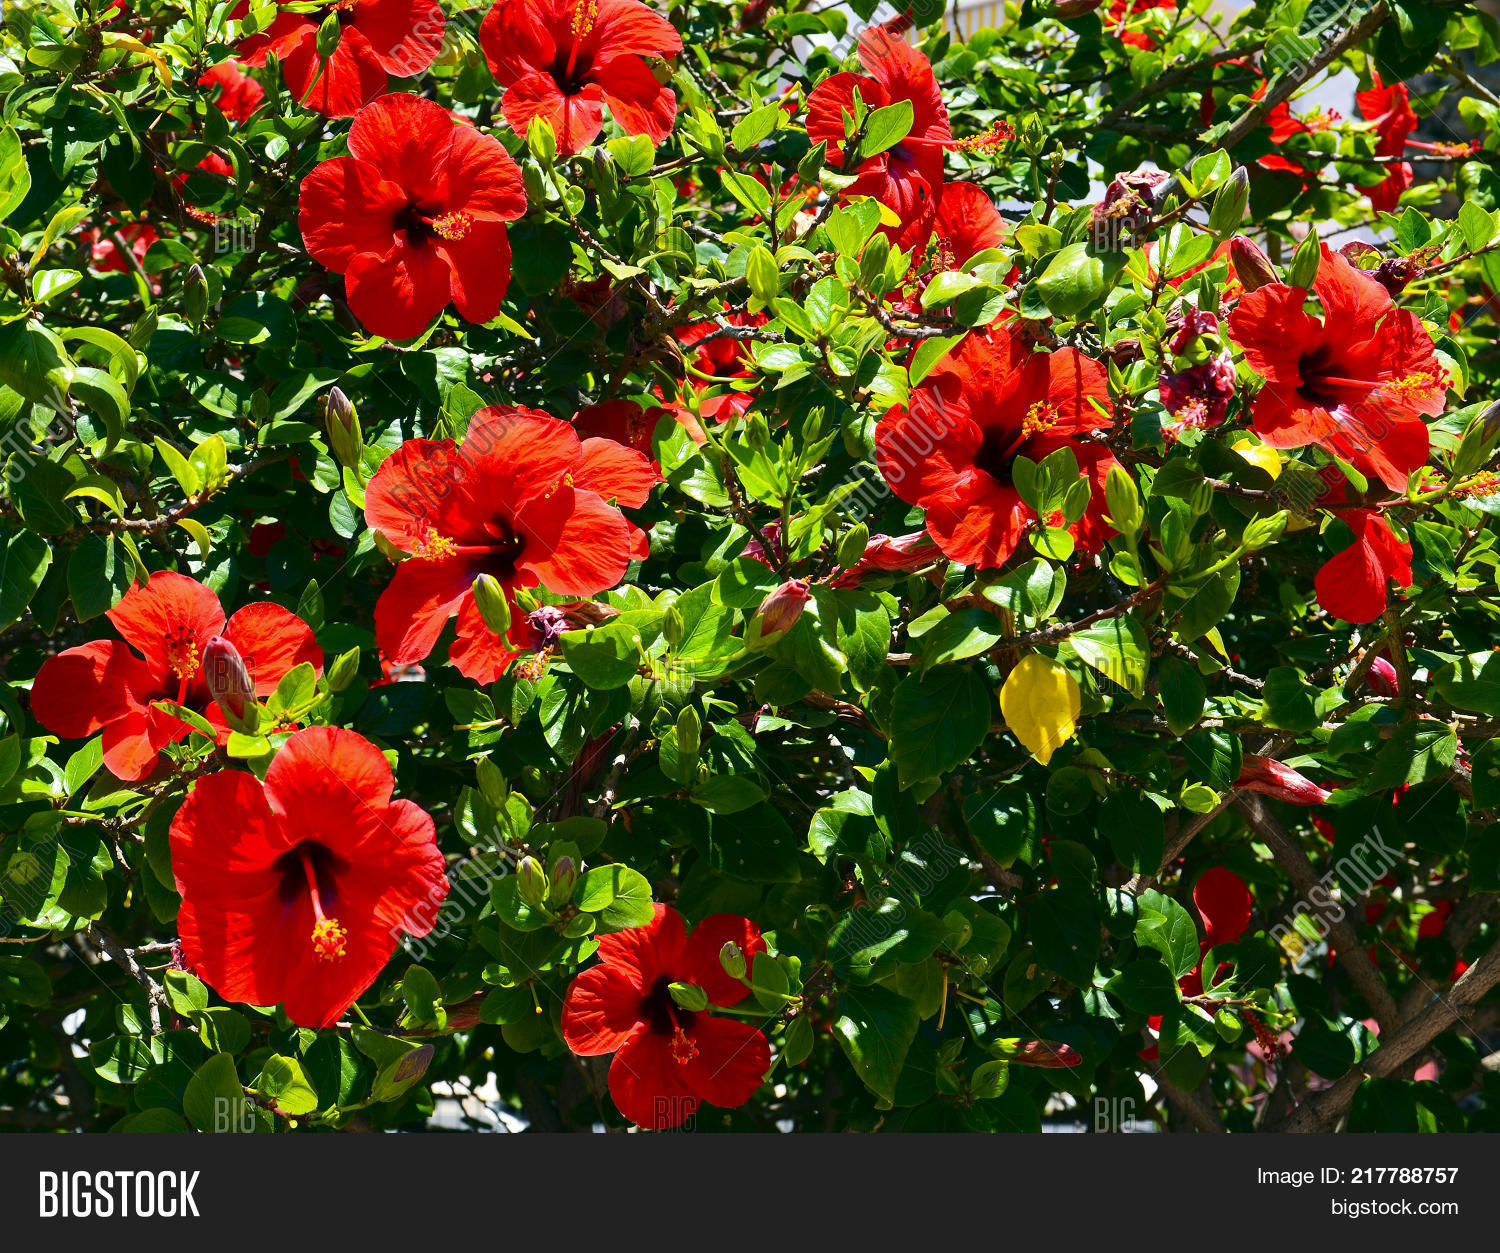 Red Hibiscus Flowers Image Photo Free Trial Bigstock